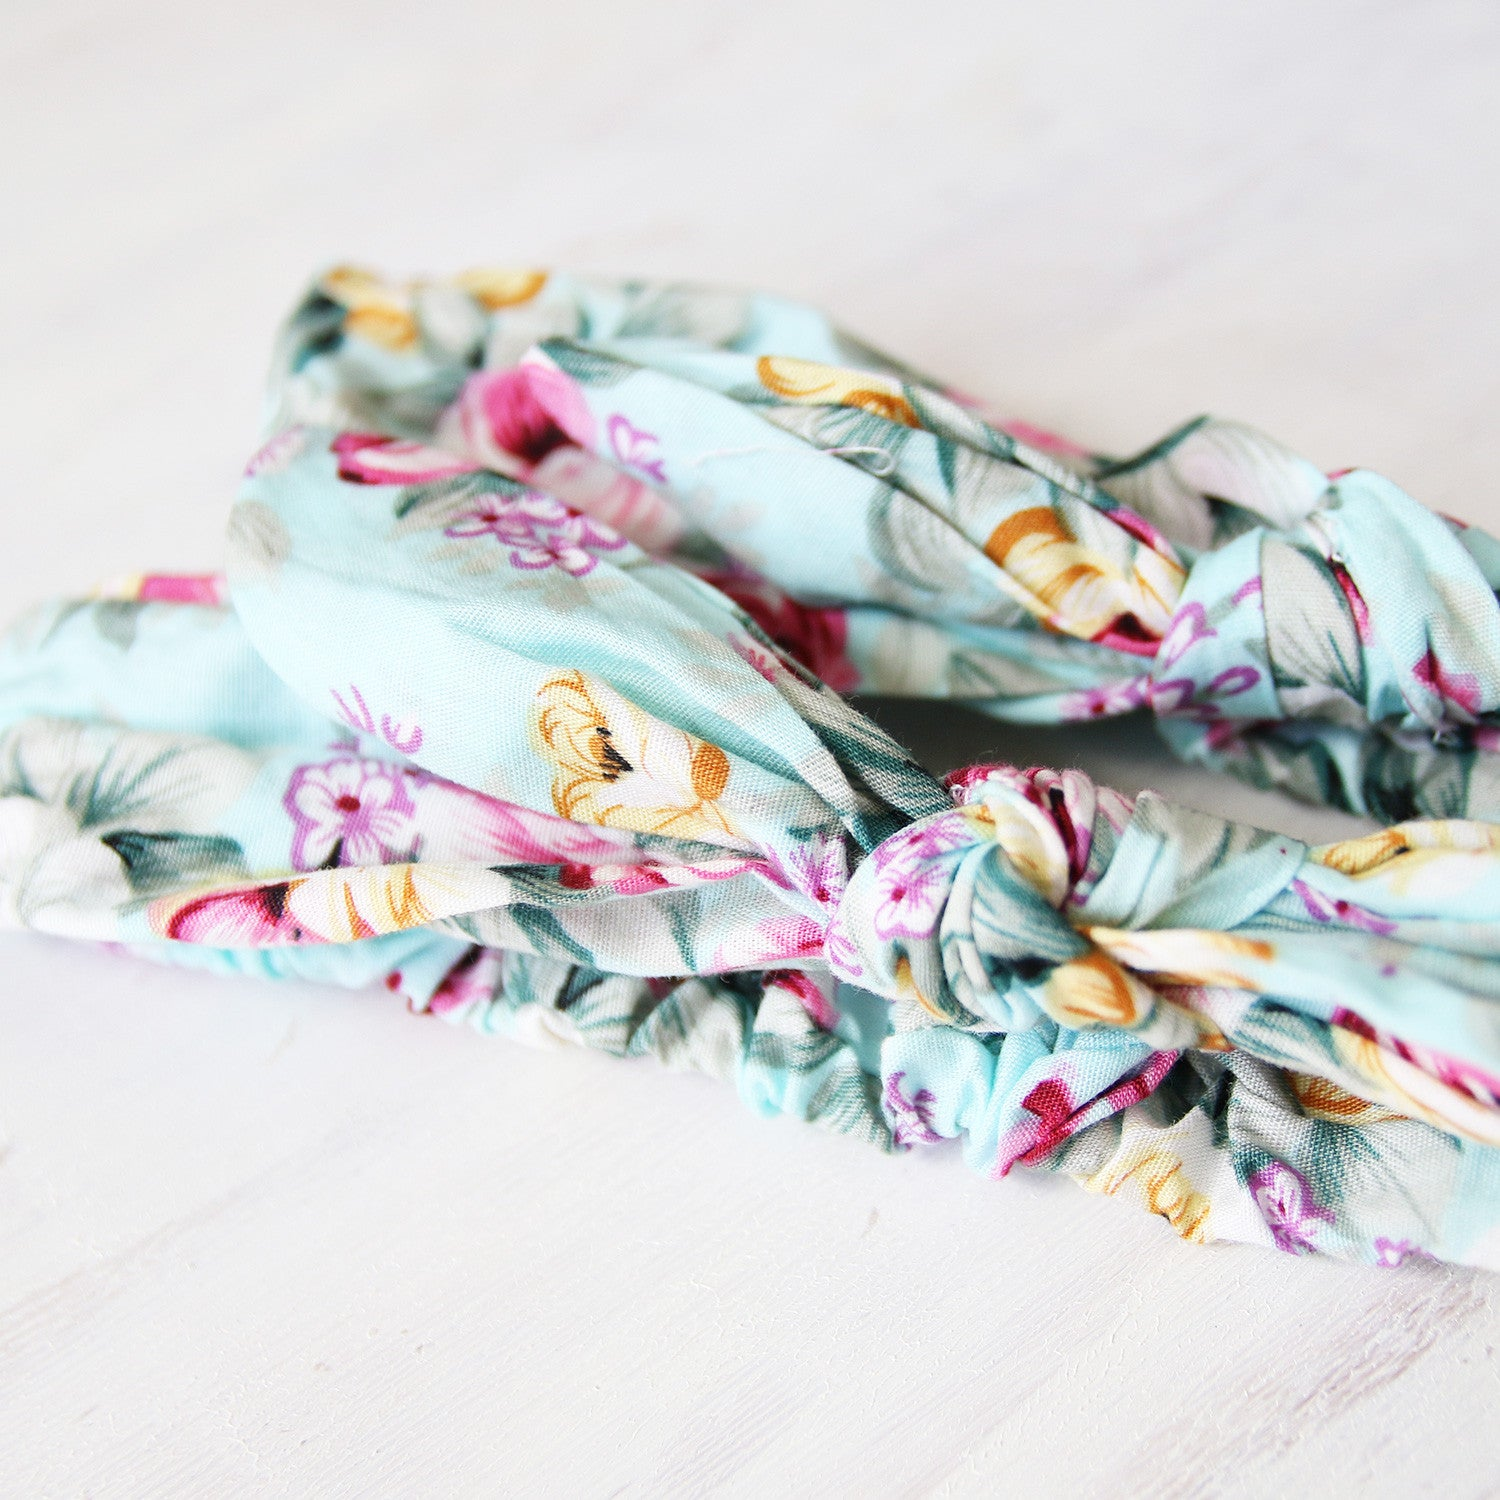 Mum & Daughter Twinsies — Turquoise & Yellow Floral Fabric Headbands (2-pack)